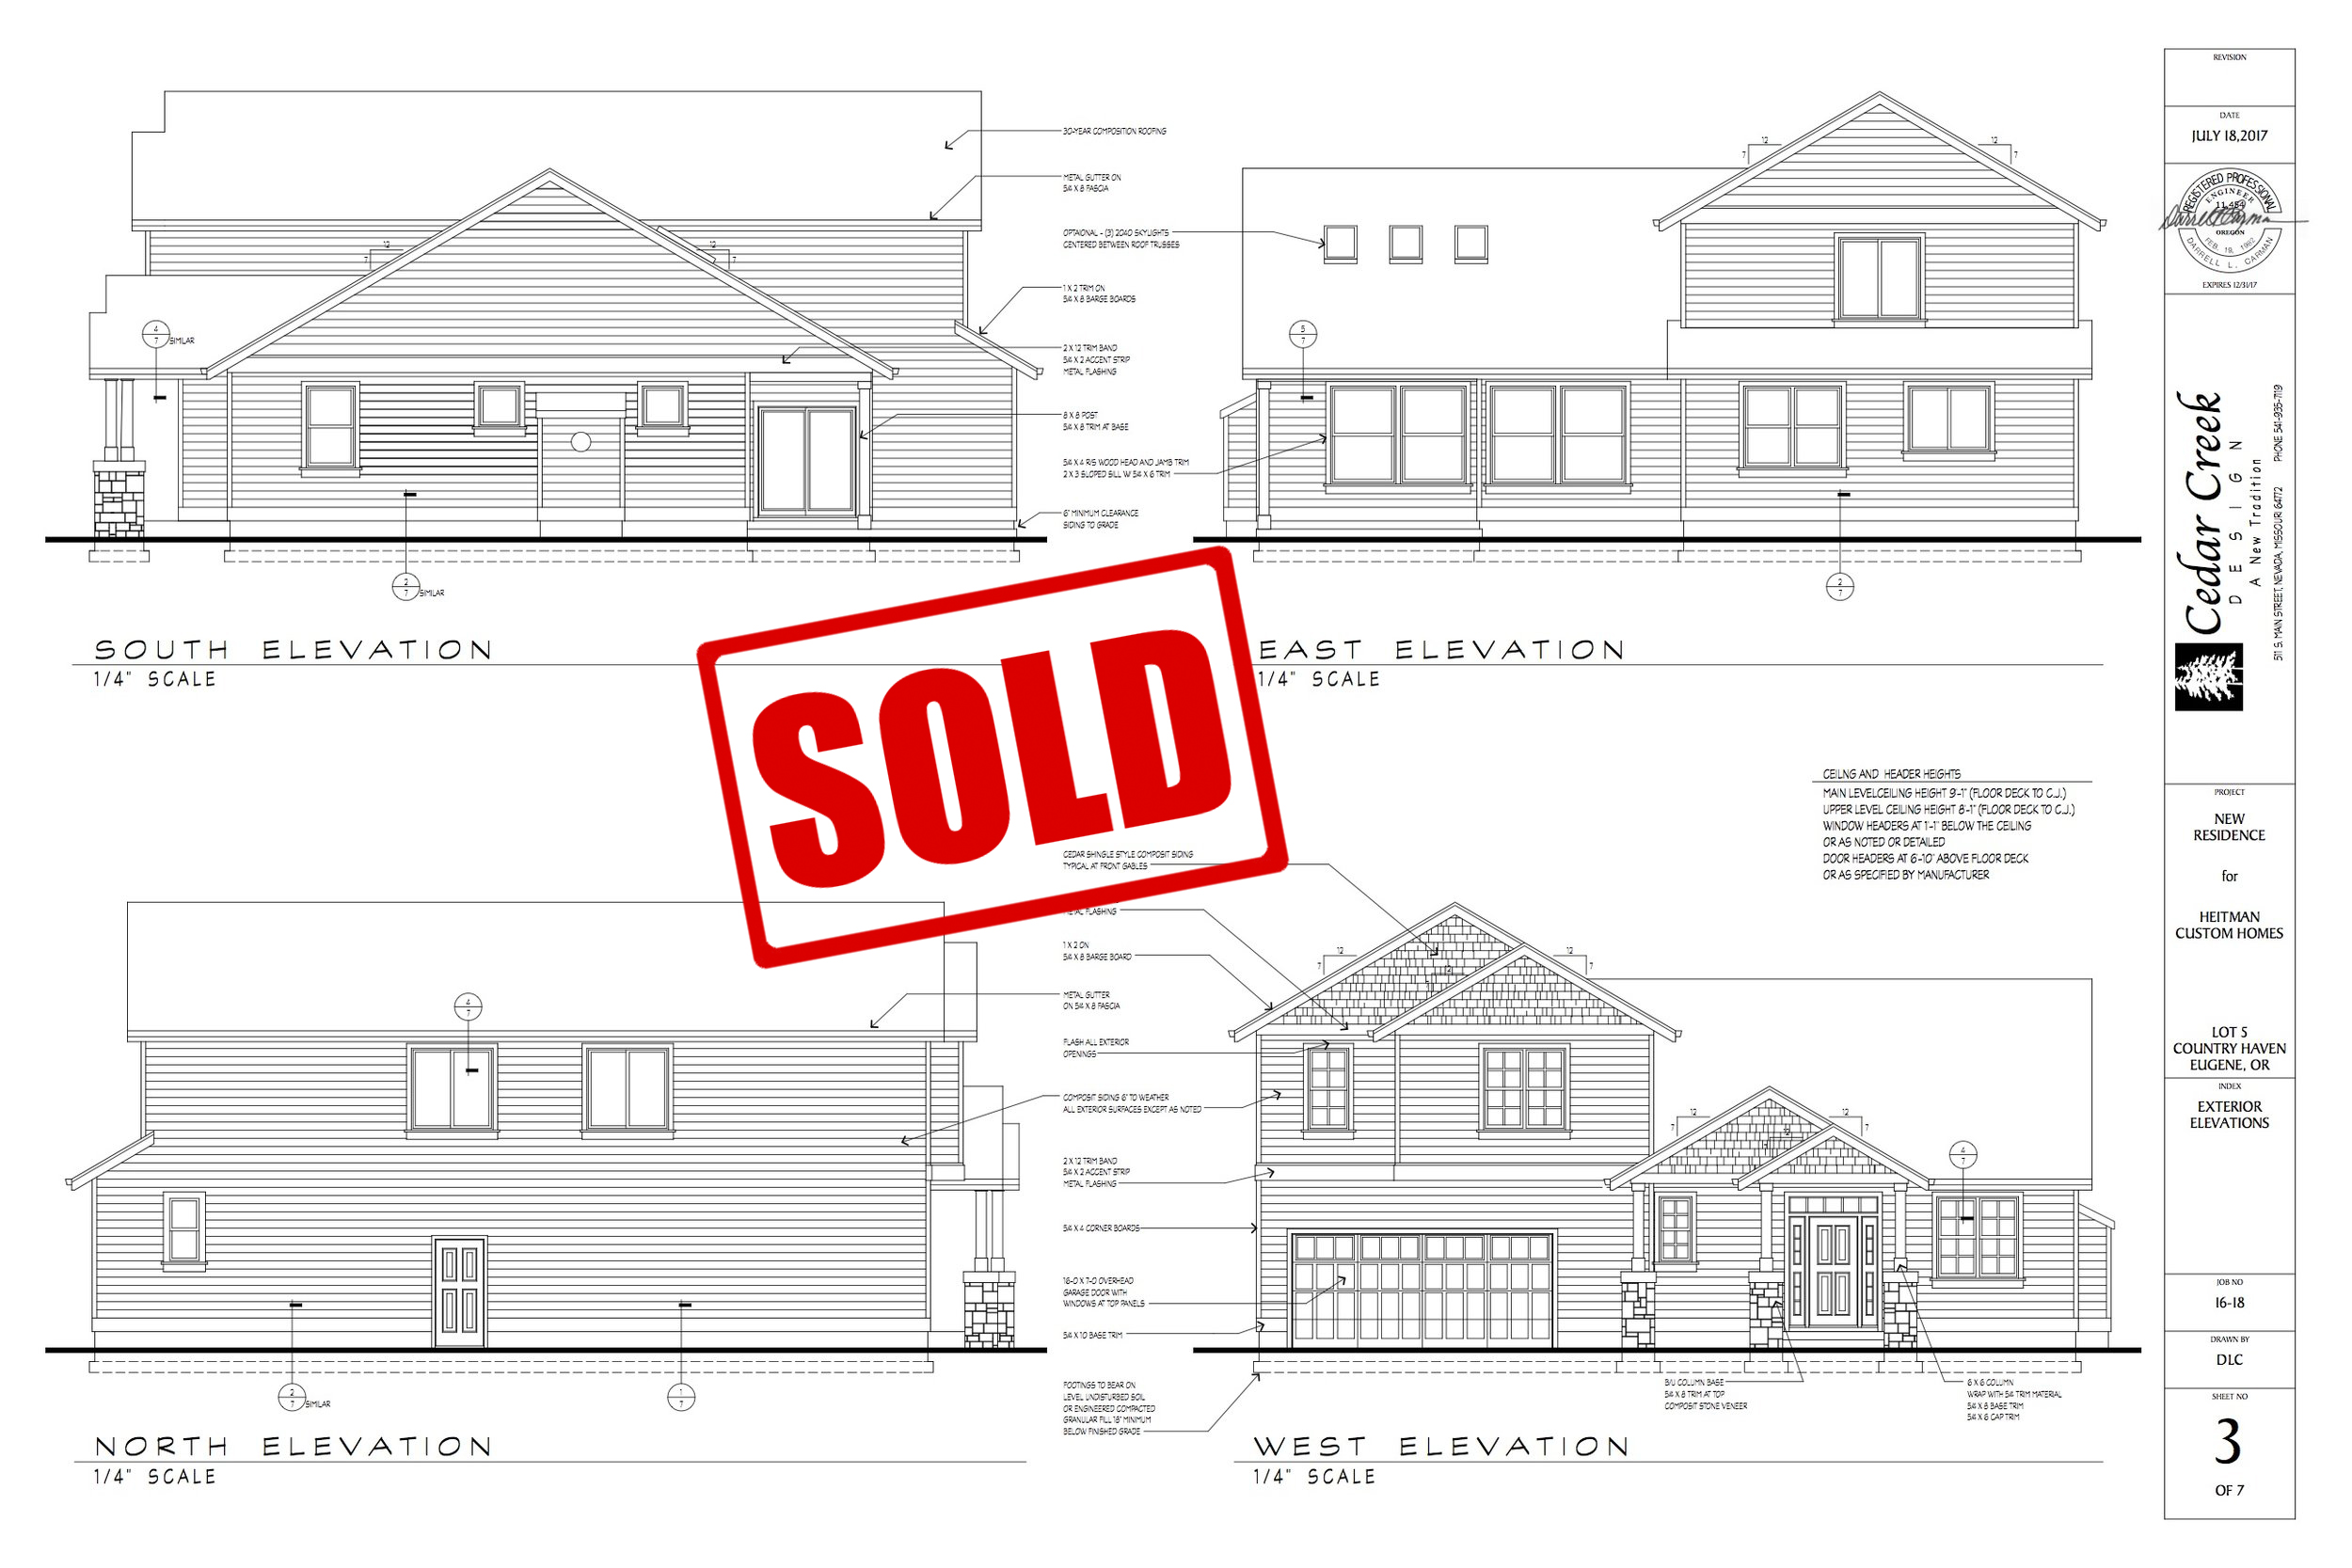 Lot 5 Elevations Sold copy.jpg